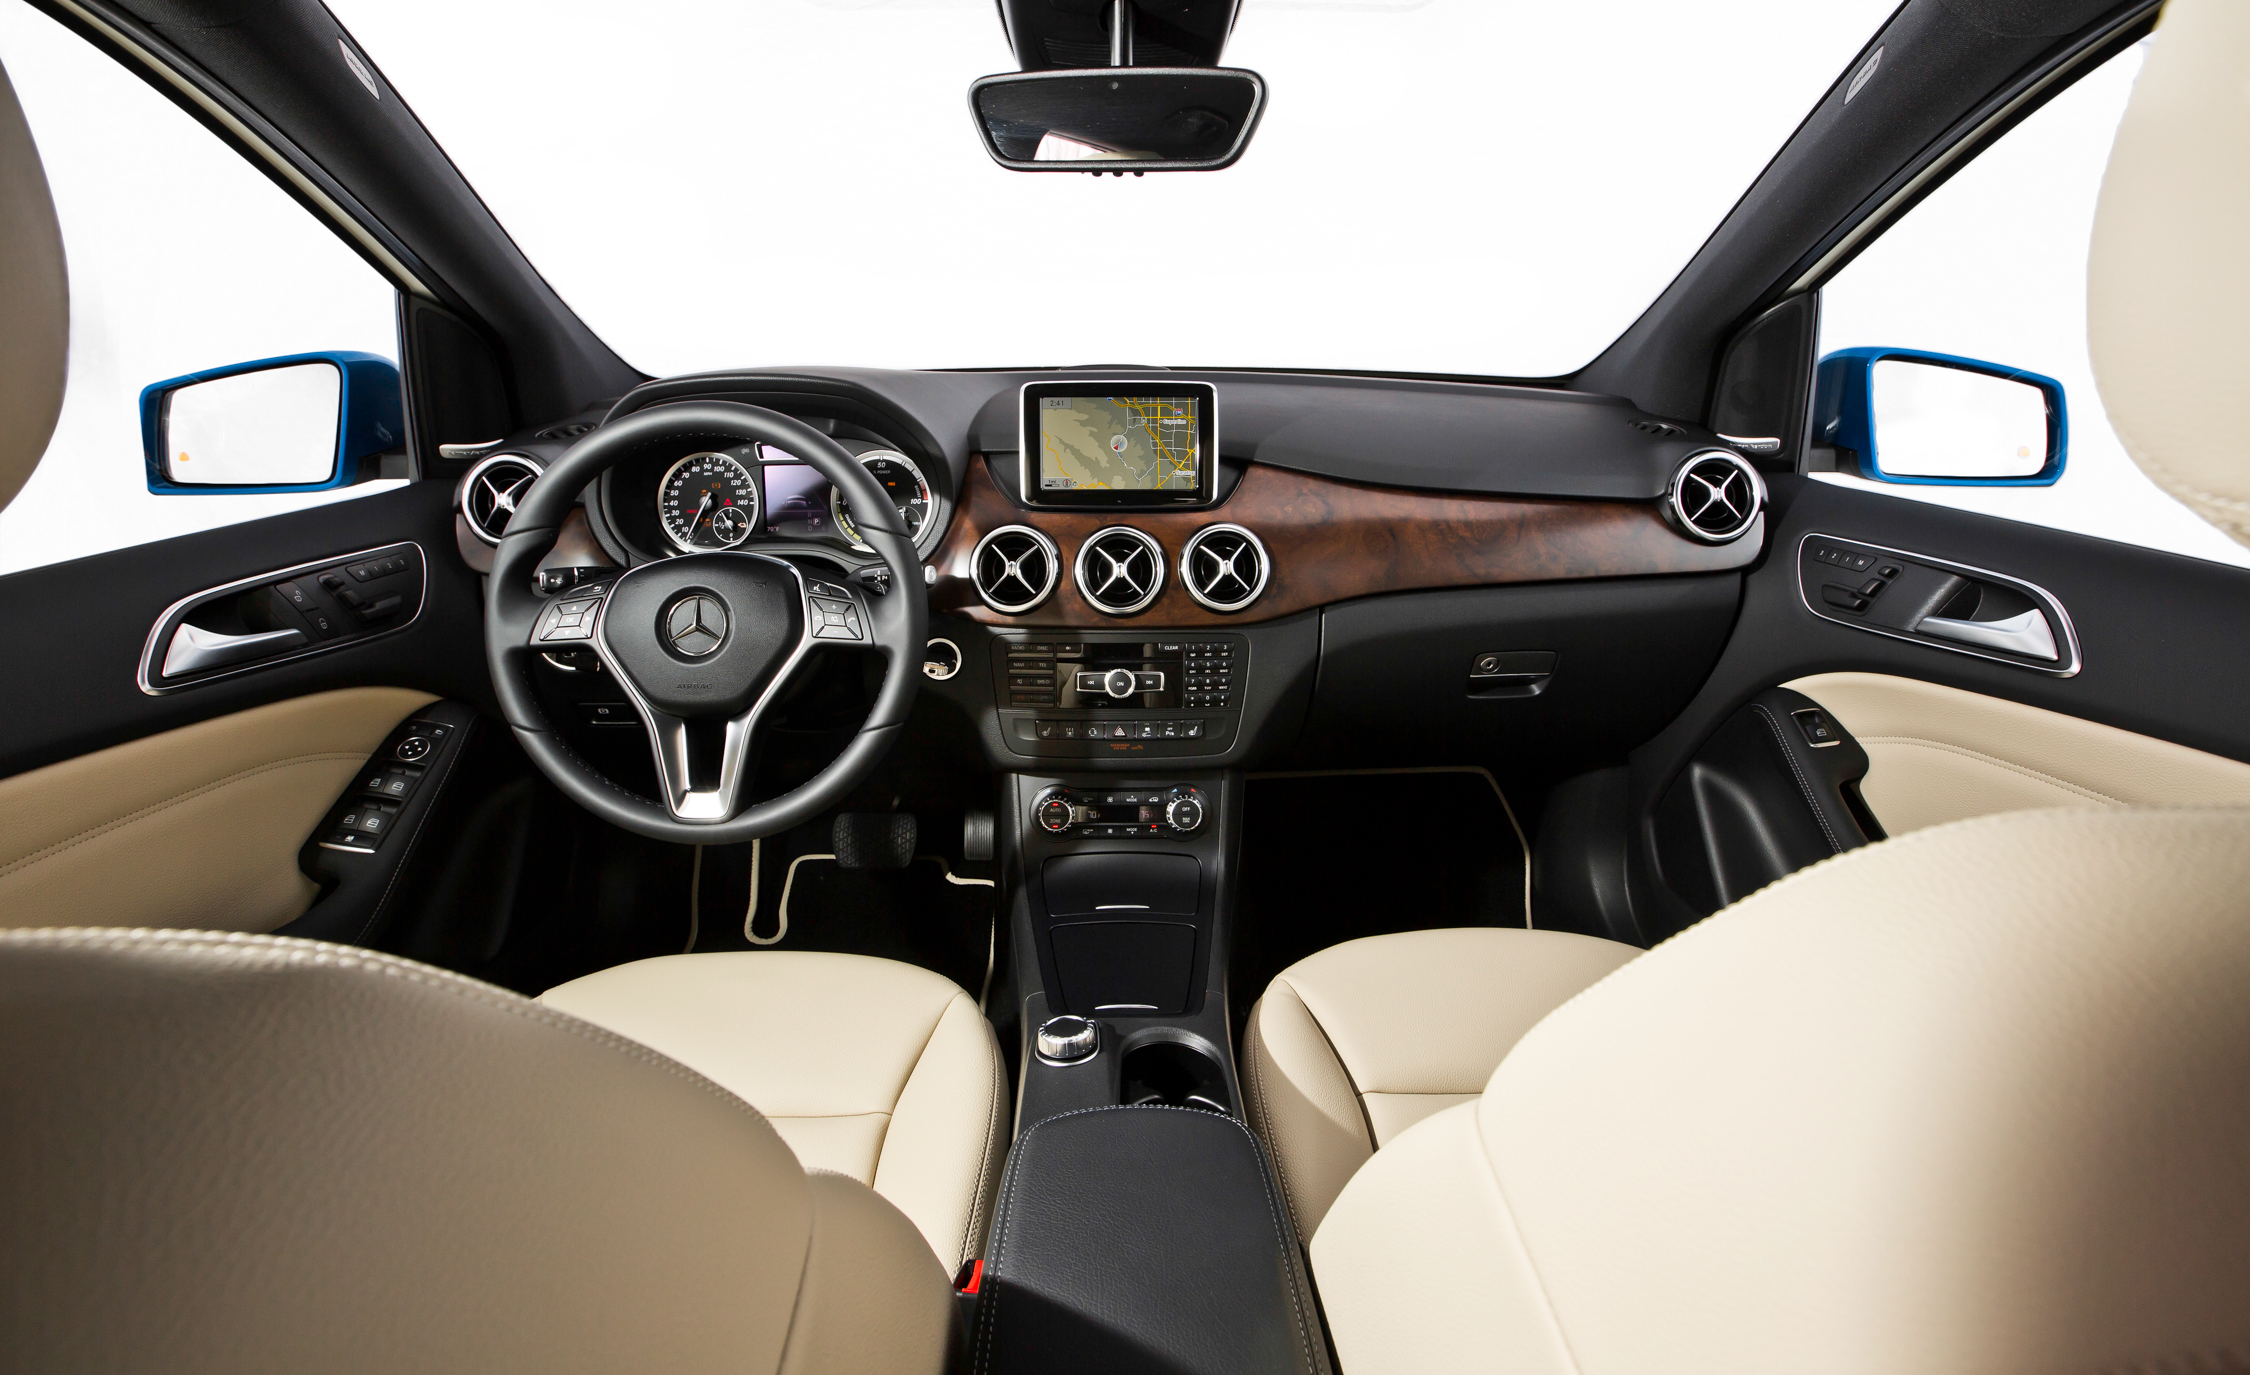 2014 Mercedes-Benz B-Class Interior Preview